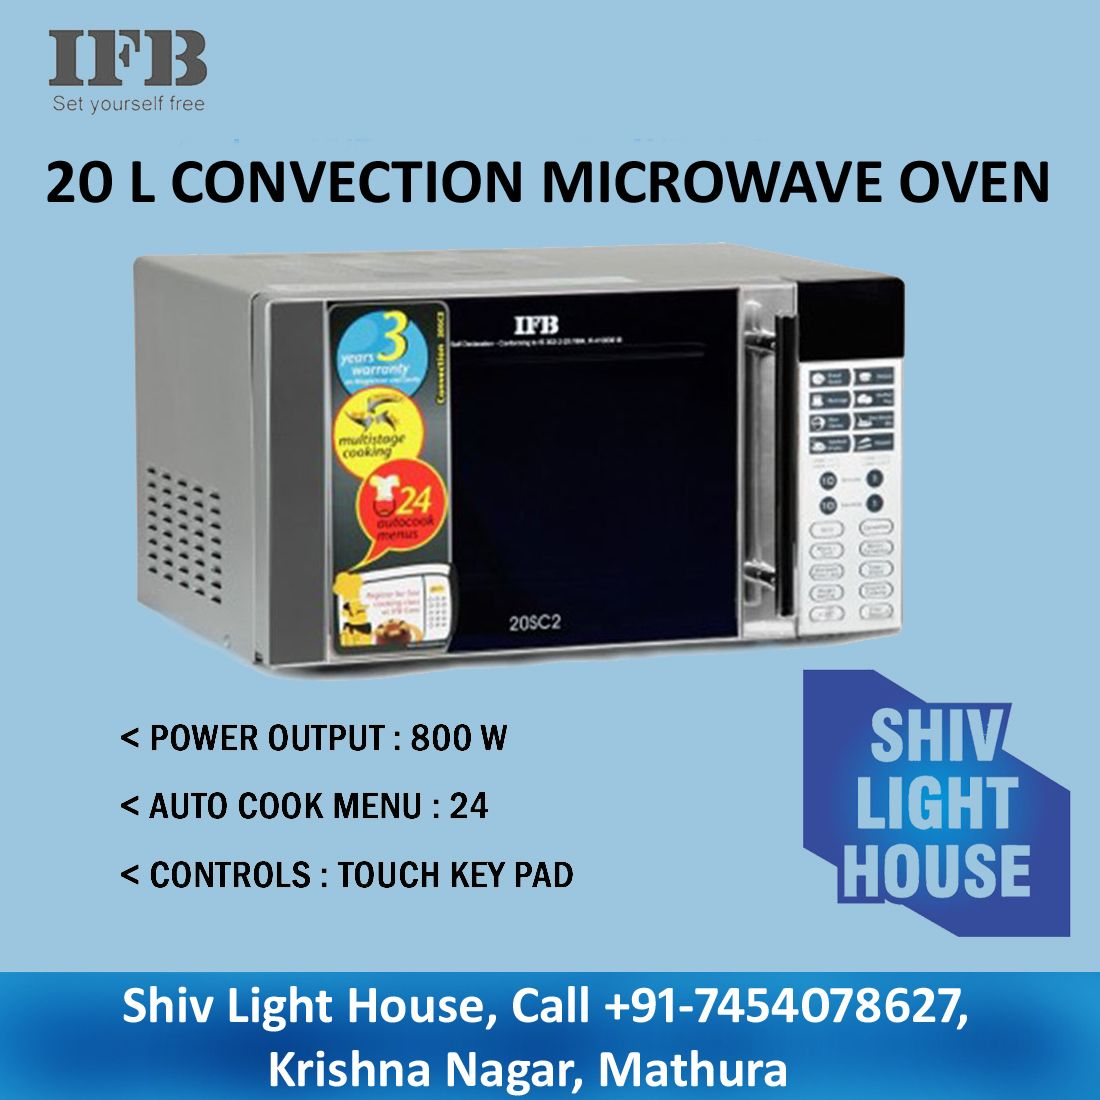 Feast On A Great Roast With The Ifb 20 L Convection Microwave Oven It S Deodorizer Feature Keeps Clean And Odor Free While Roasting Through